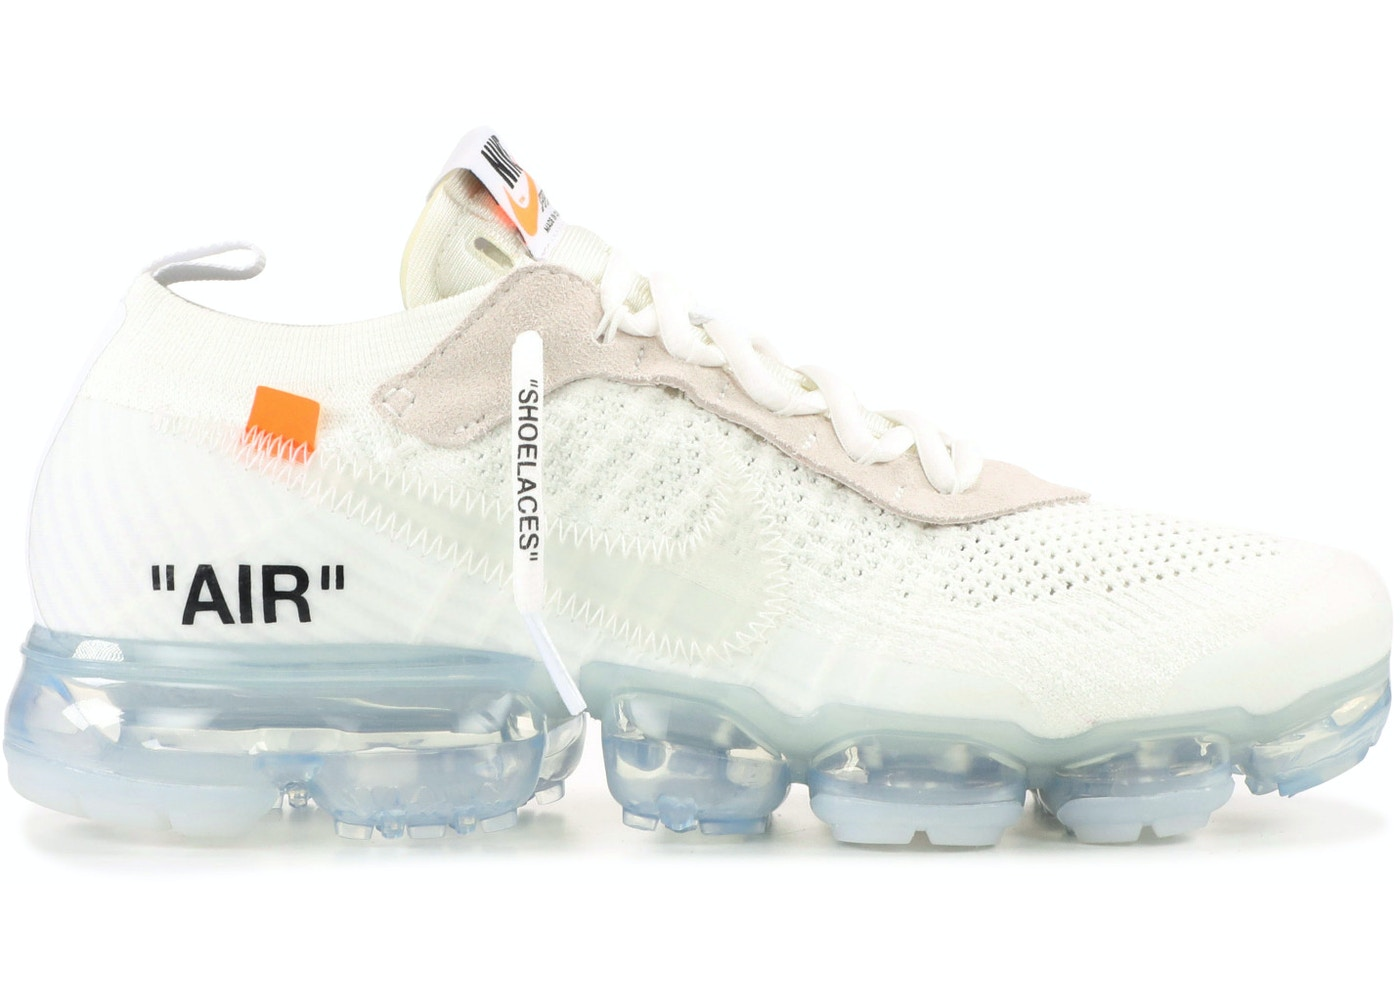 853f89e8e4767 Air Vapormax Off White 2018 - AA3831-100